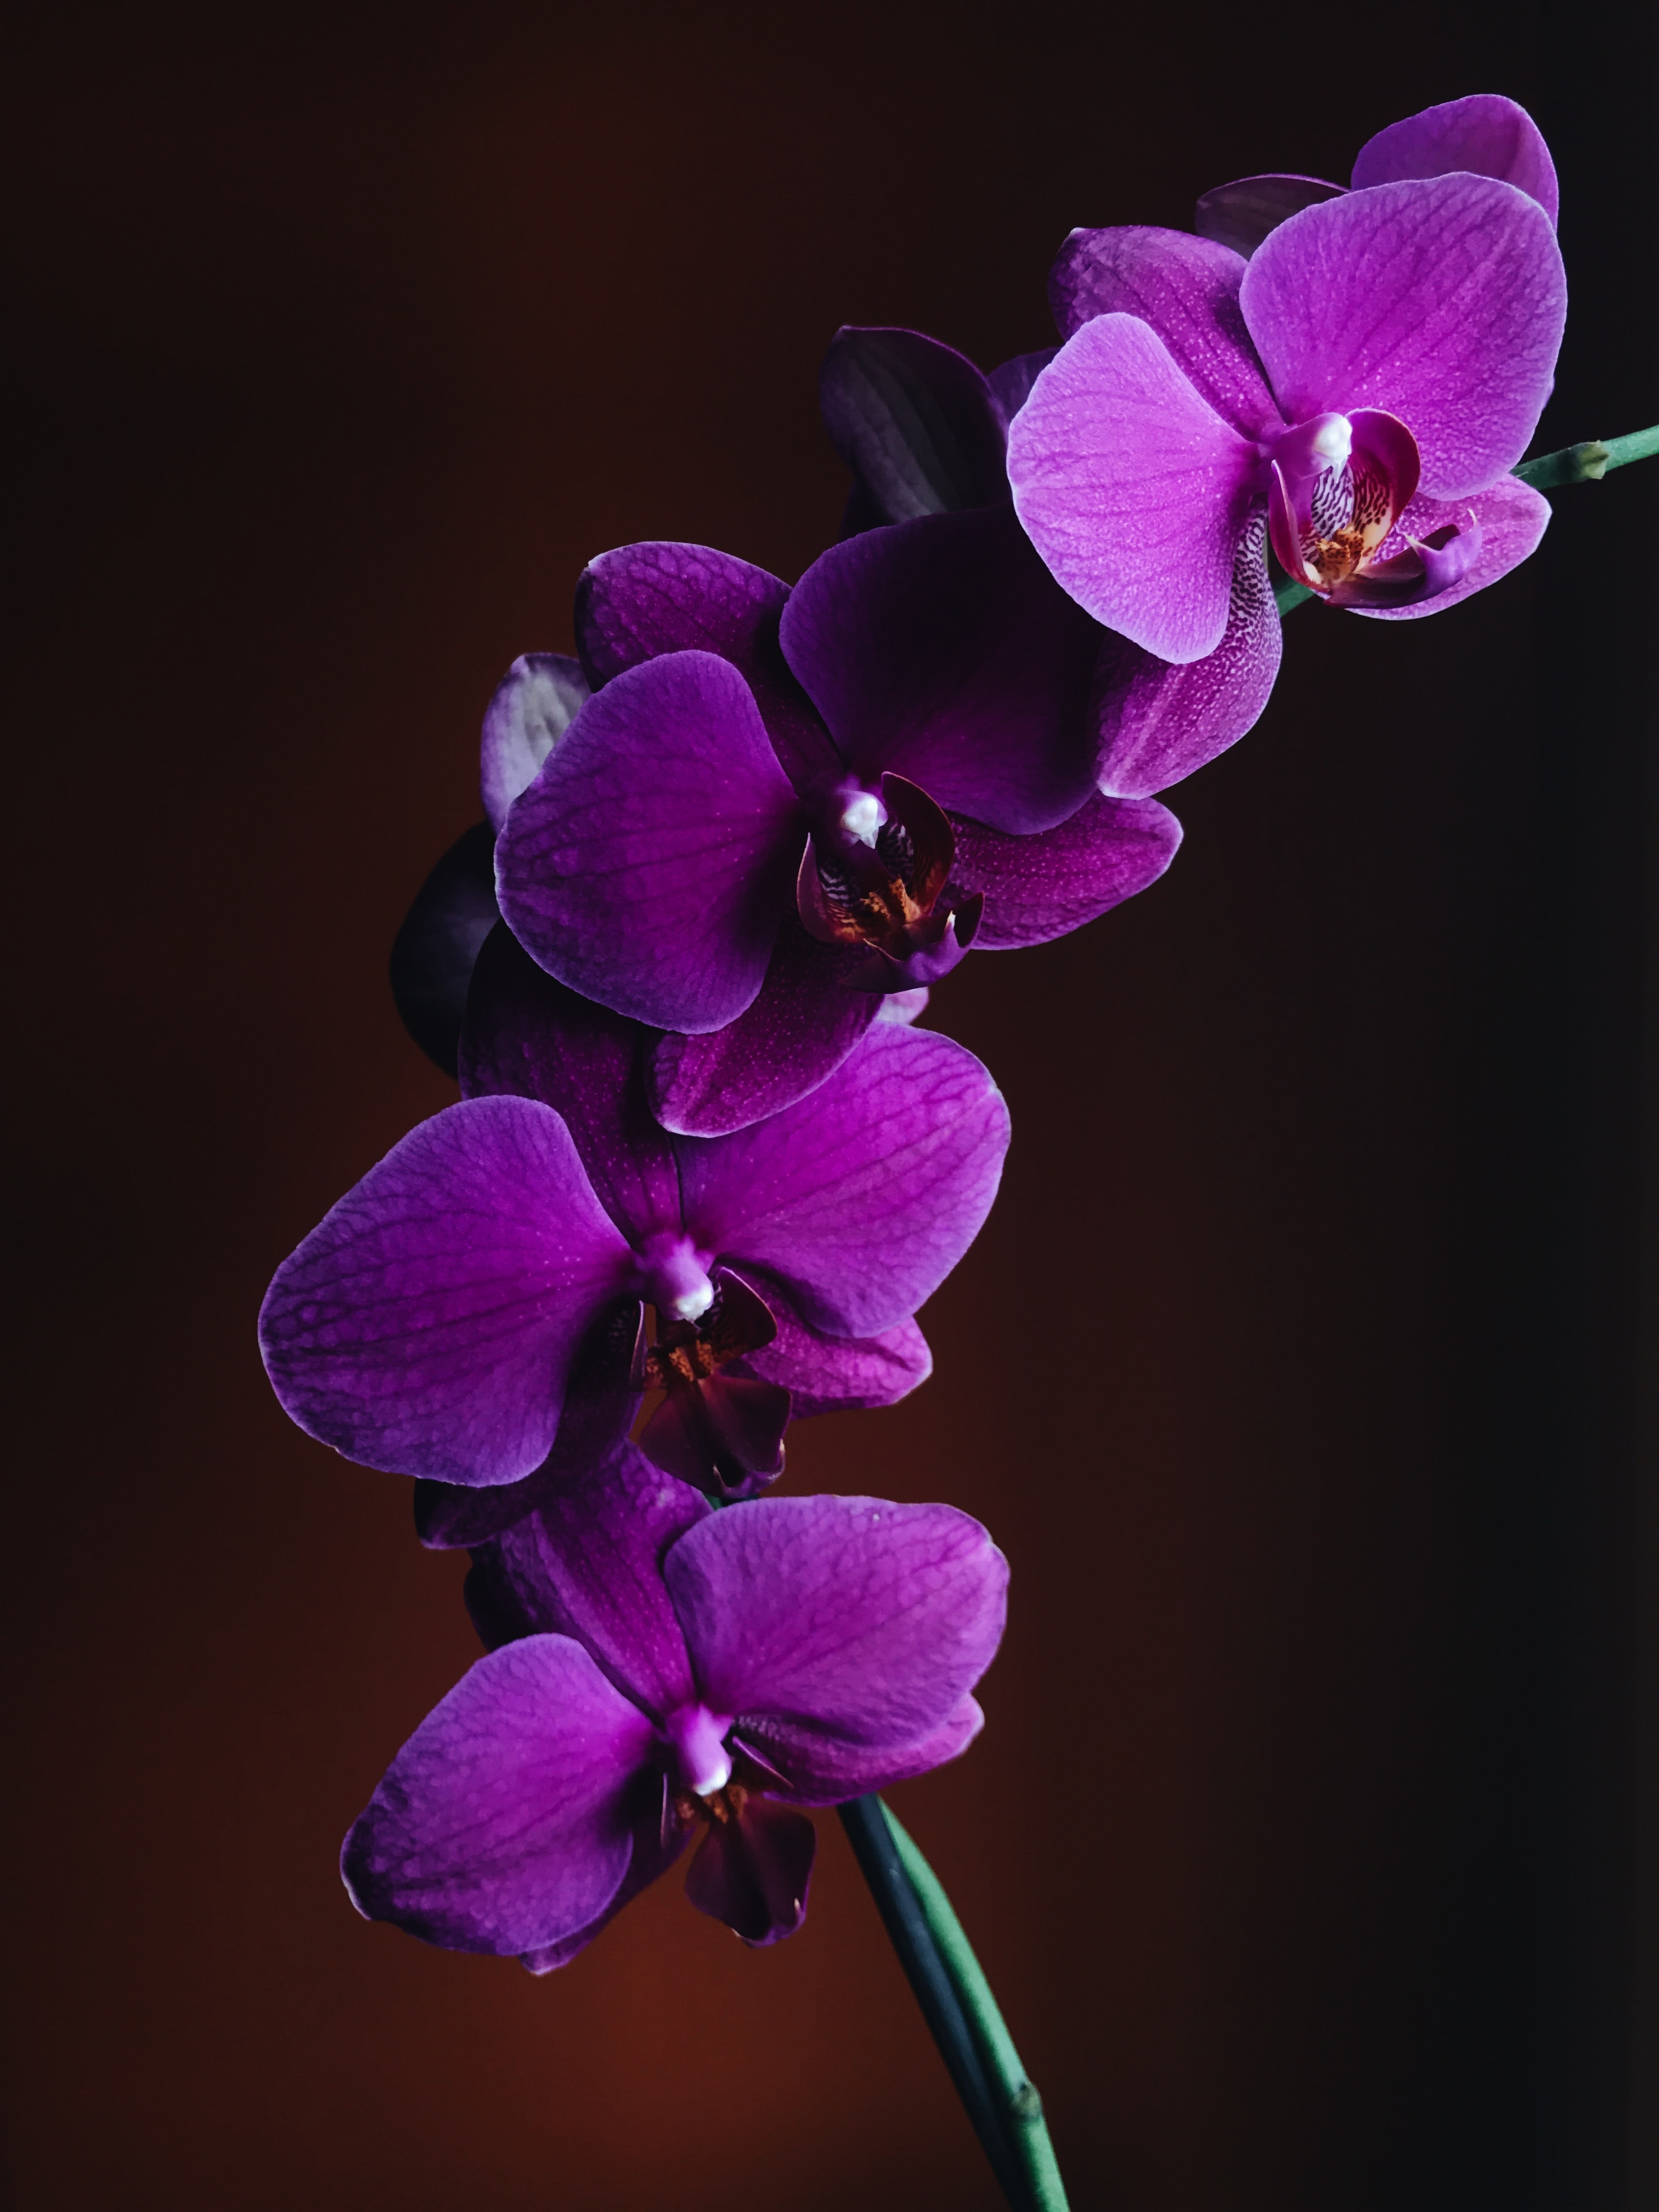 close-up photo of purple Orchid flower